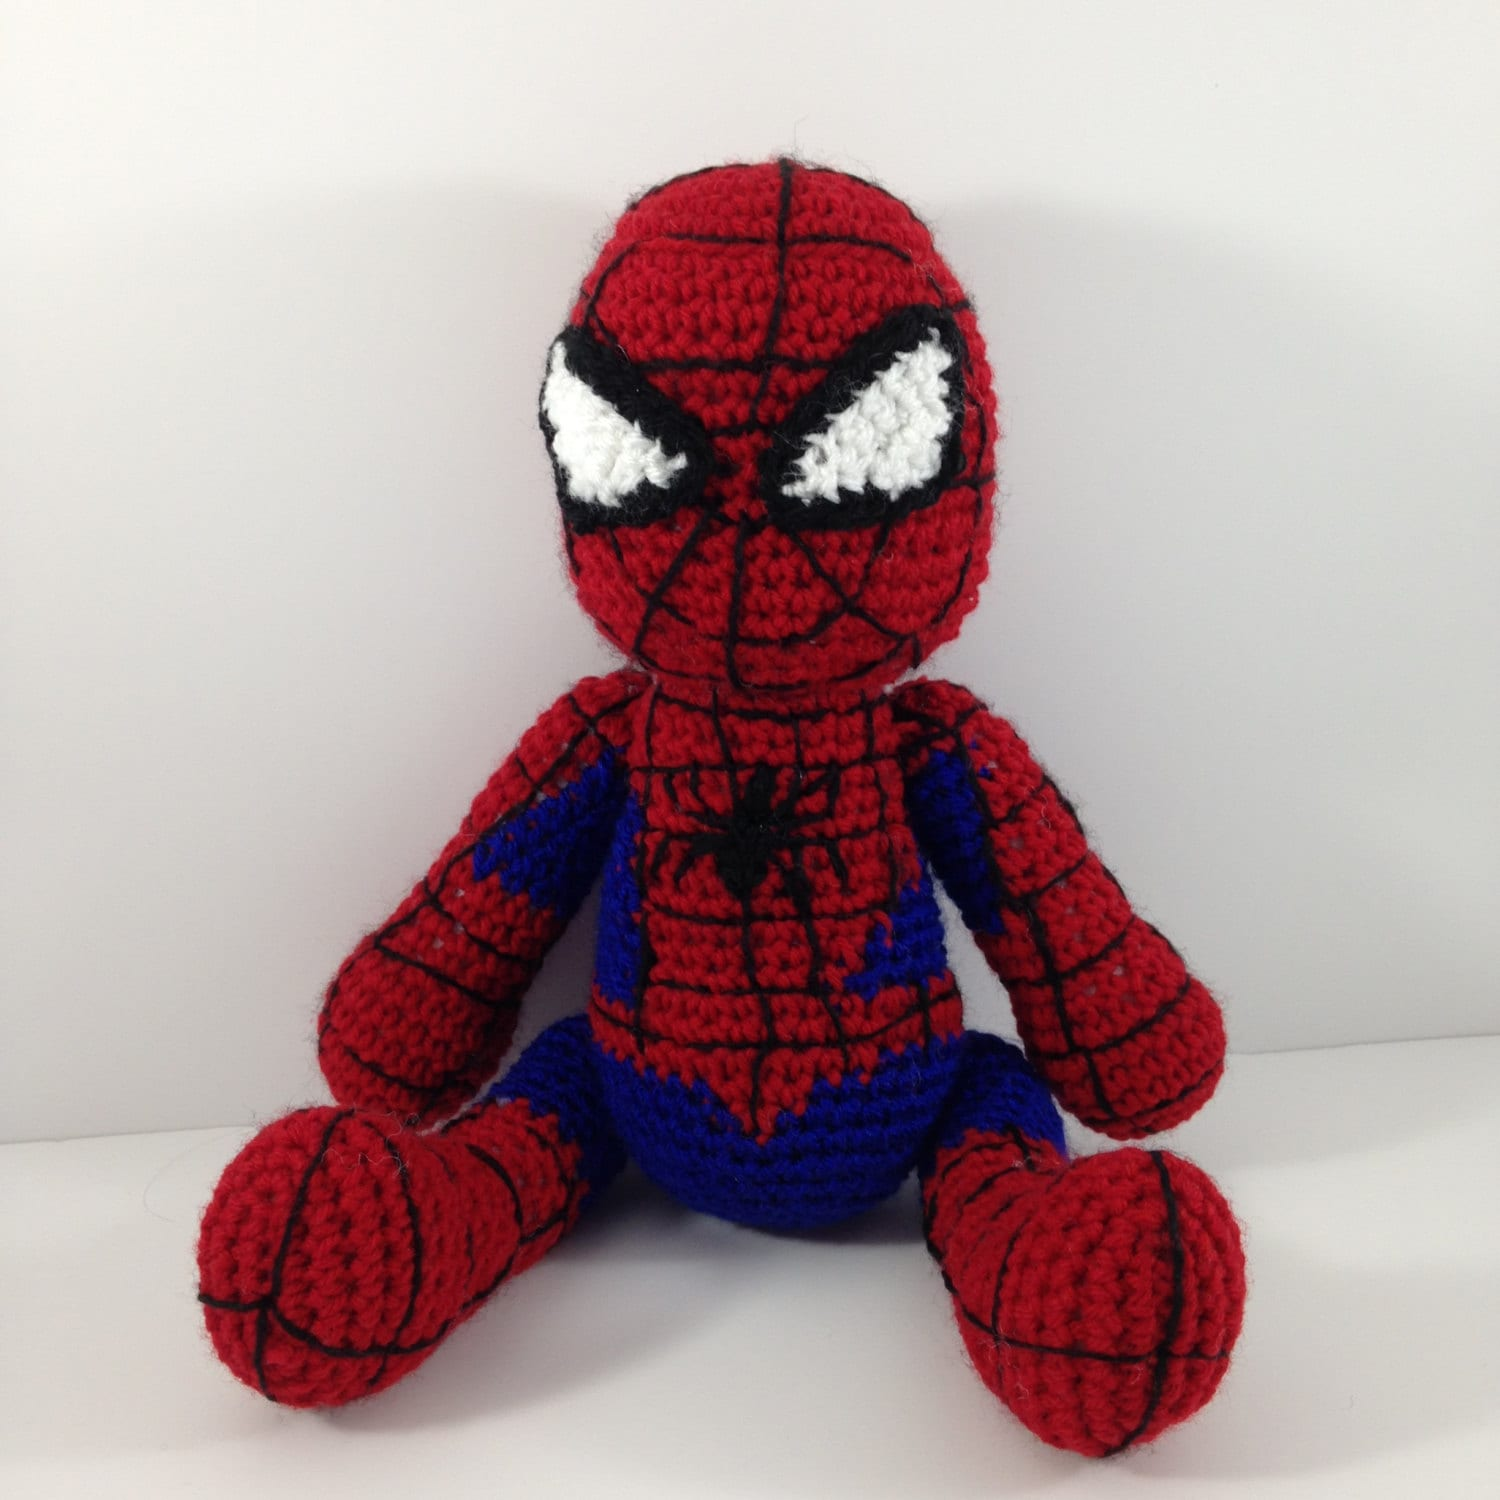 Spiderman Crochet Amigurumi Doll